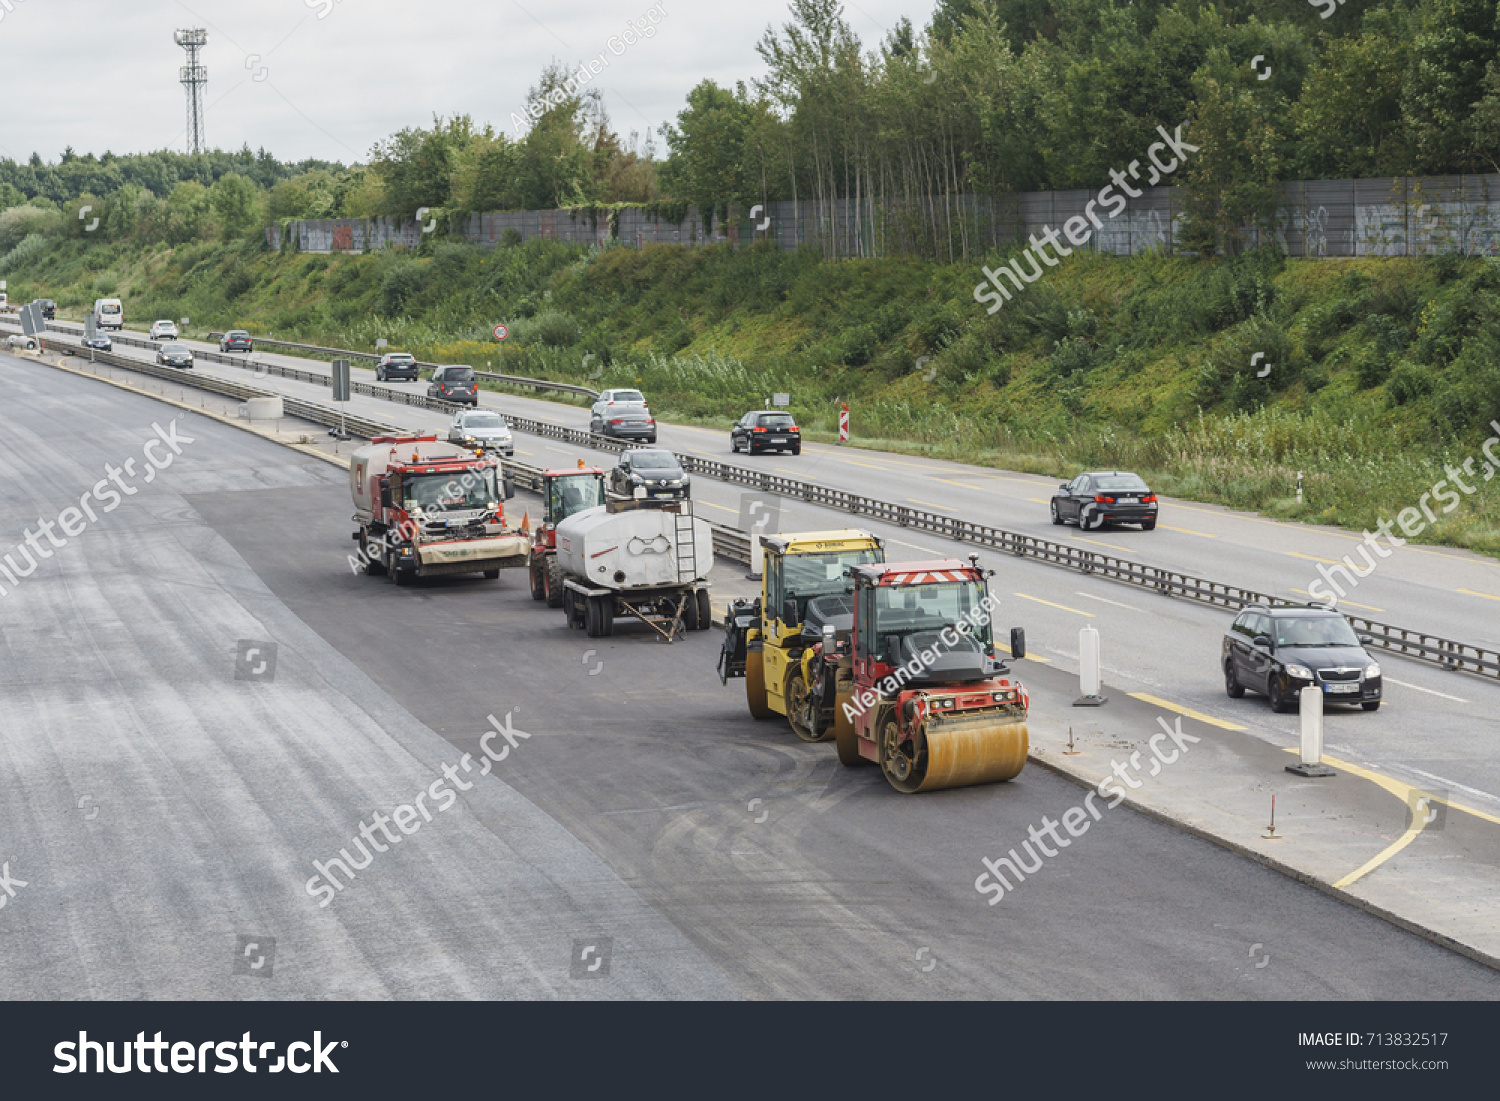 Quickborn Germany September Highway Road Stock Photo - Quickborn germany map